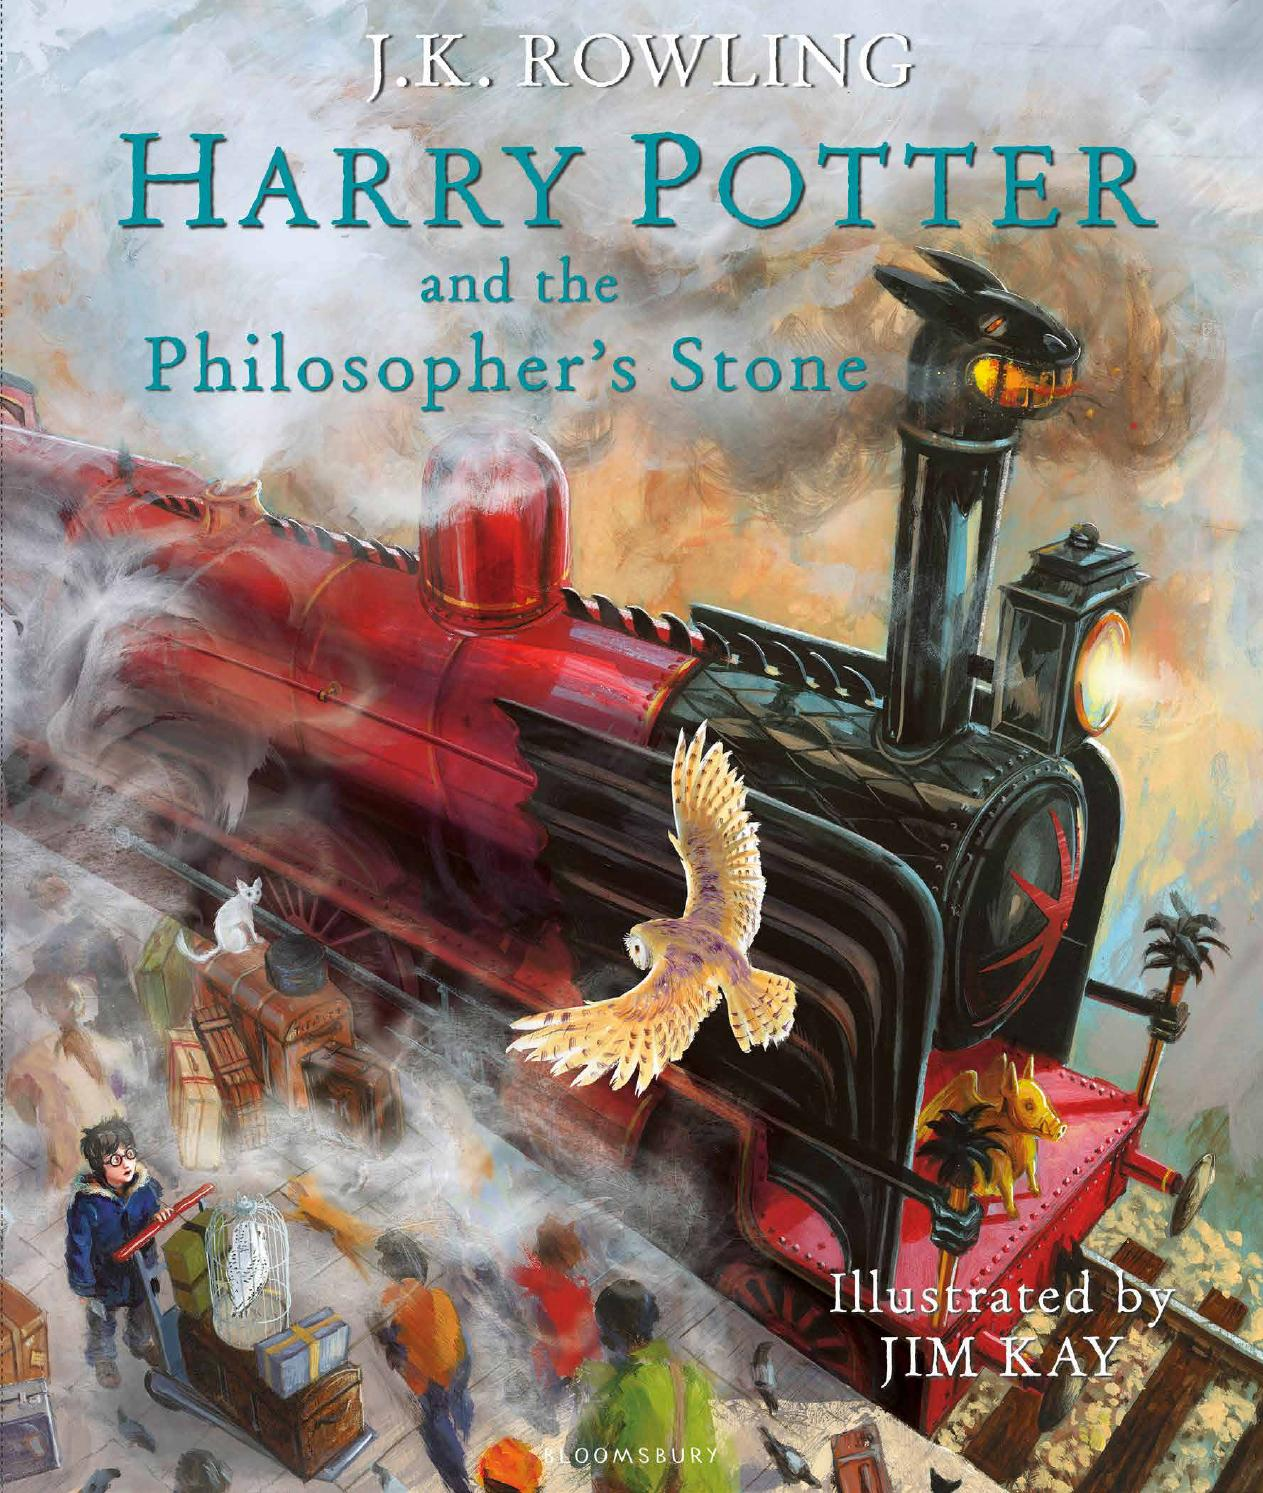 Libros Sobre Harry Potter Harry Potter And The Philosopher S Stone By J K Rowling Illustrated By Jim Kay